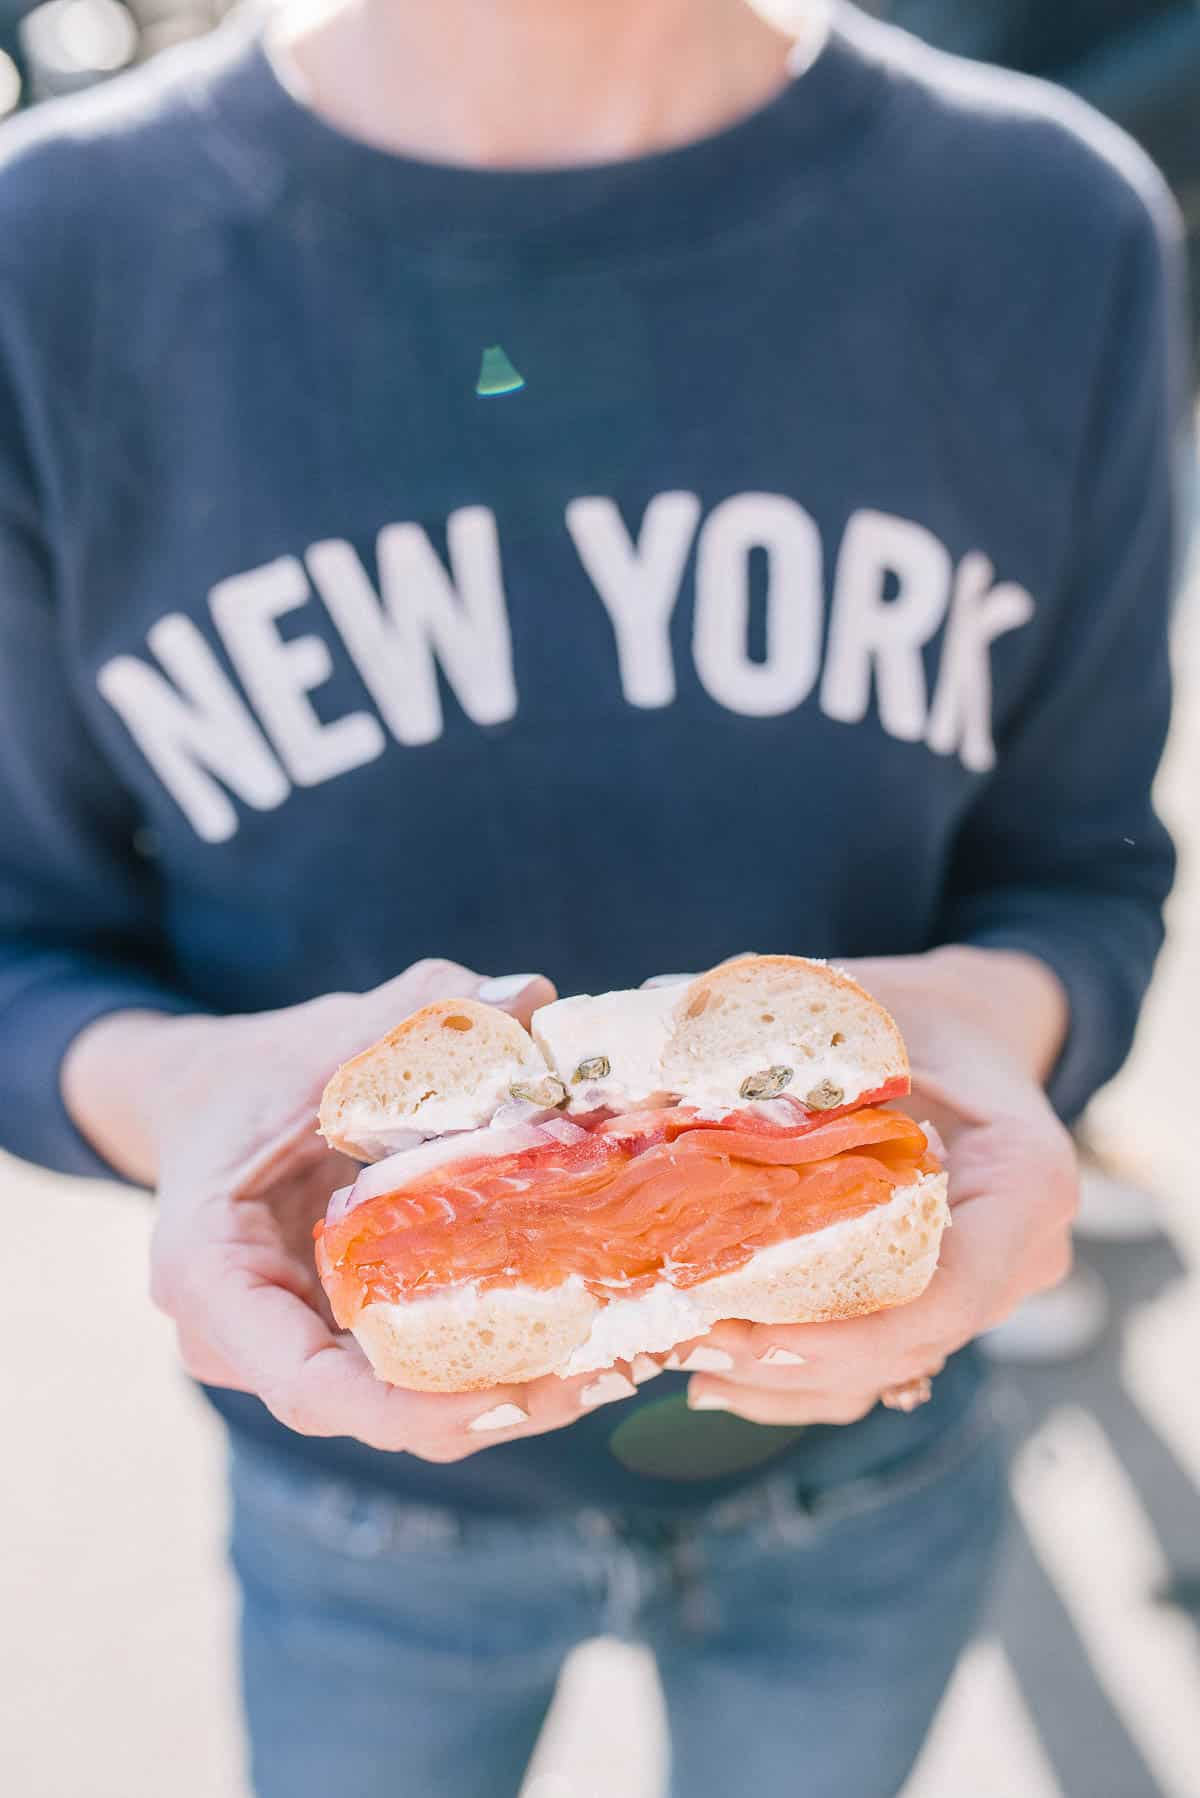 Best Places To Get A Bagel In NYC - New York City Travel Guide